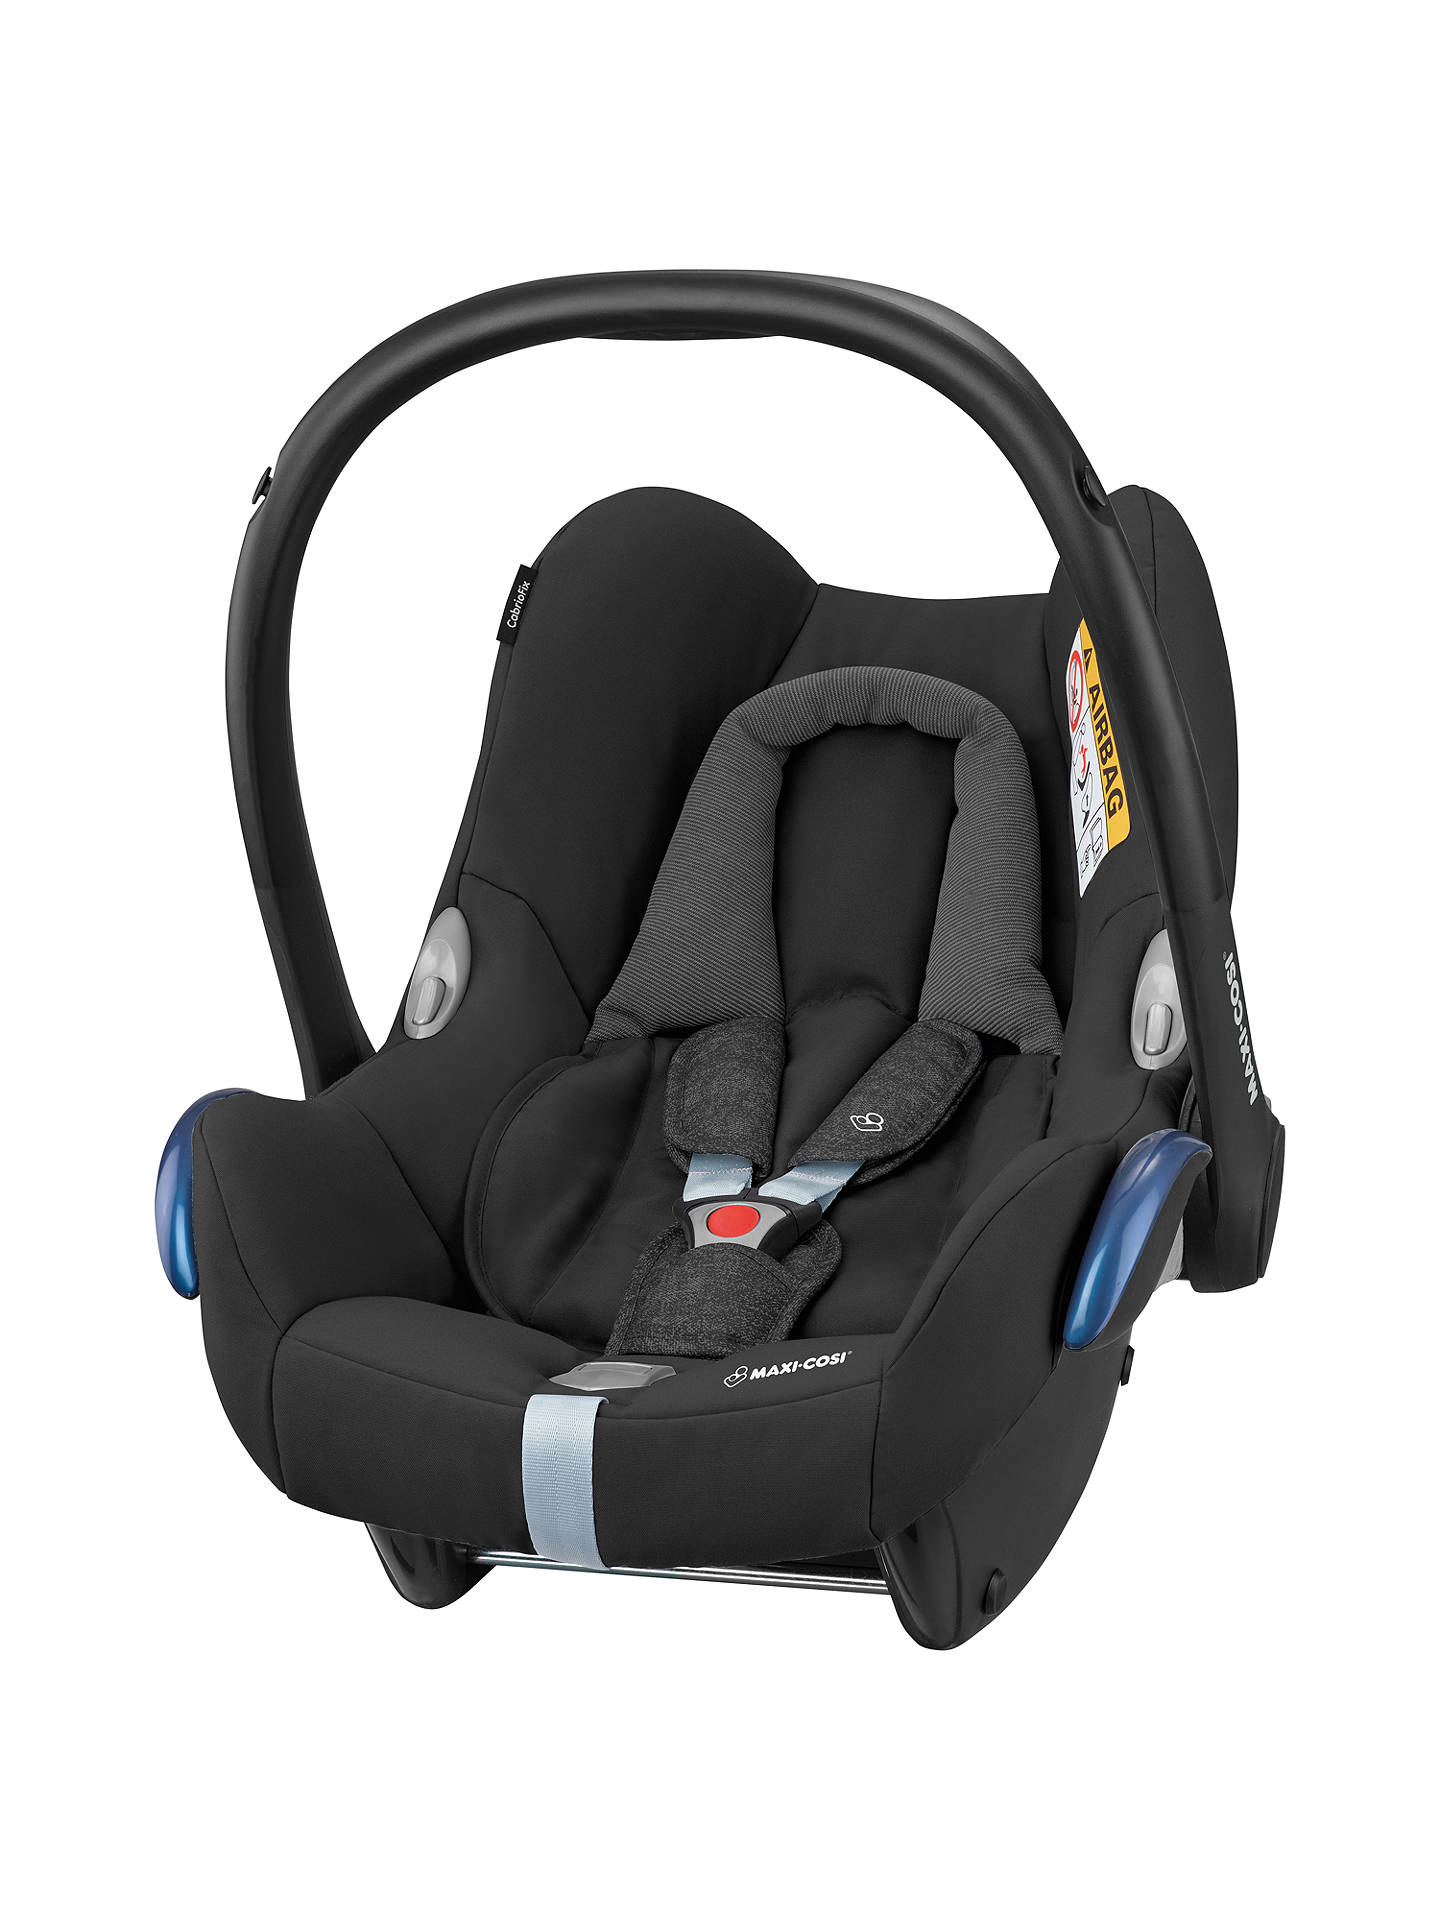 maxi cosi cabriofix group 0 baby car seat nomad black at john lewis partners. Black Bedroom Furniture Sets. Home Design Ideas